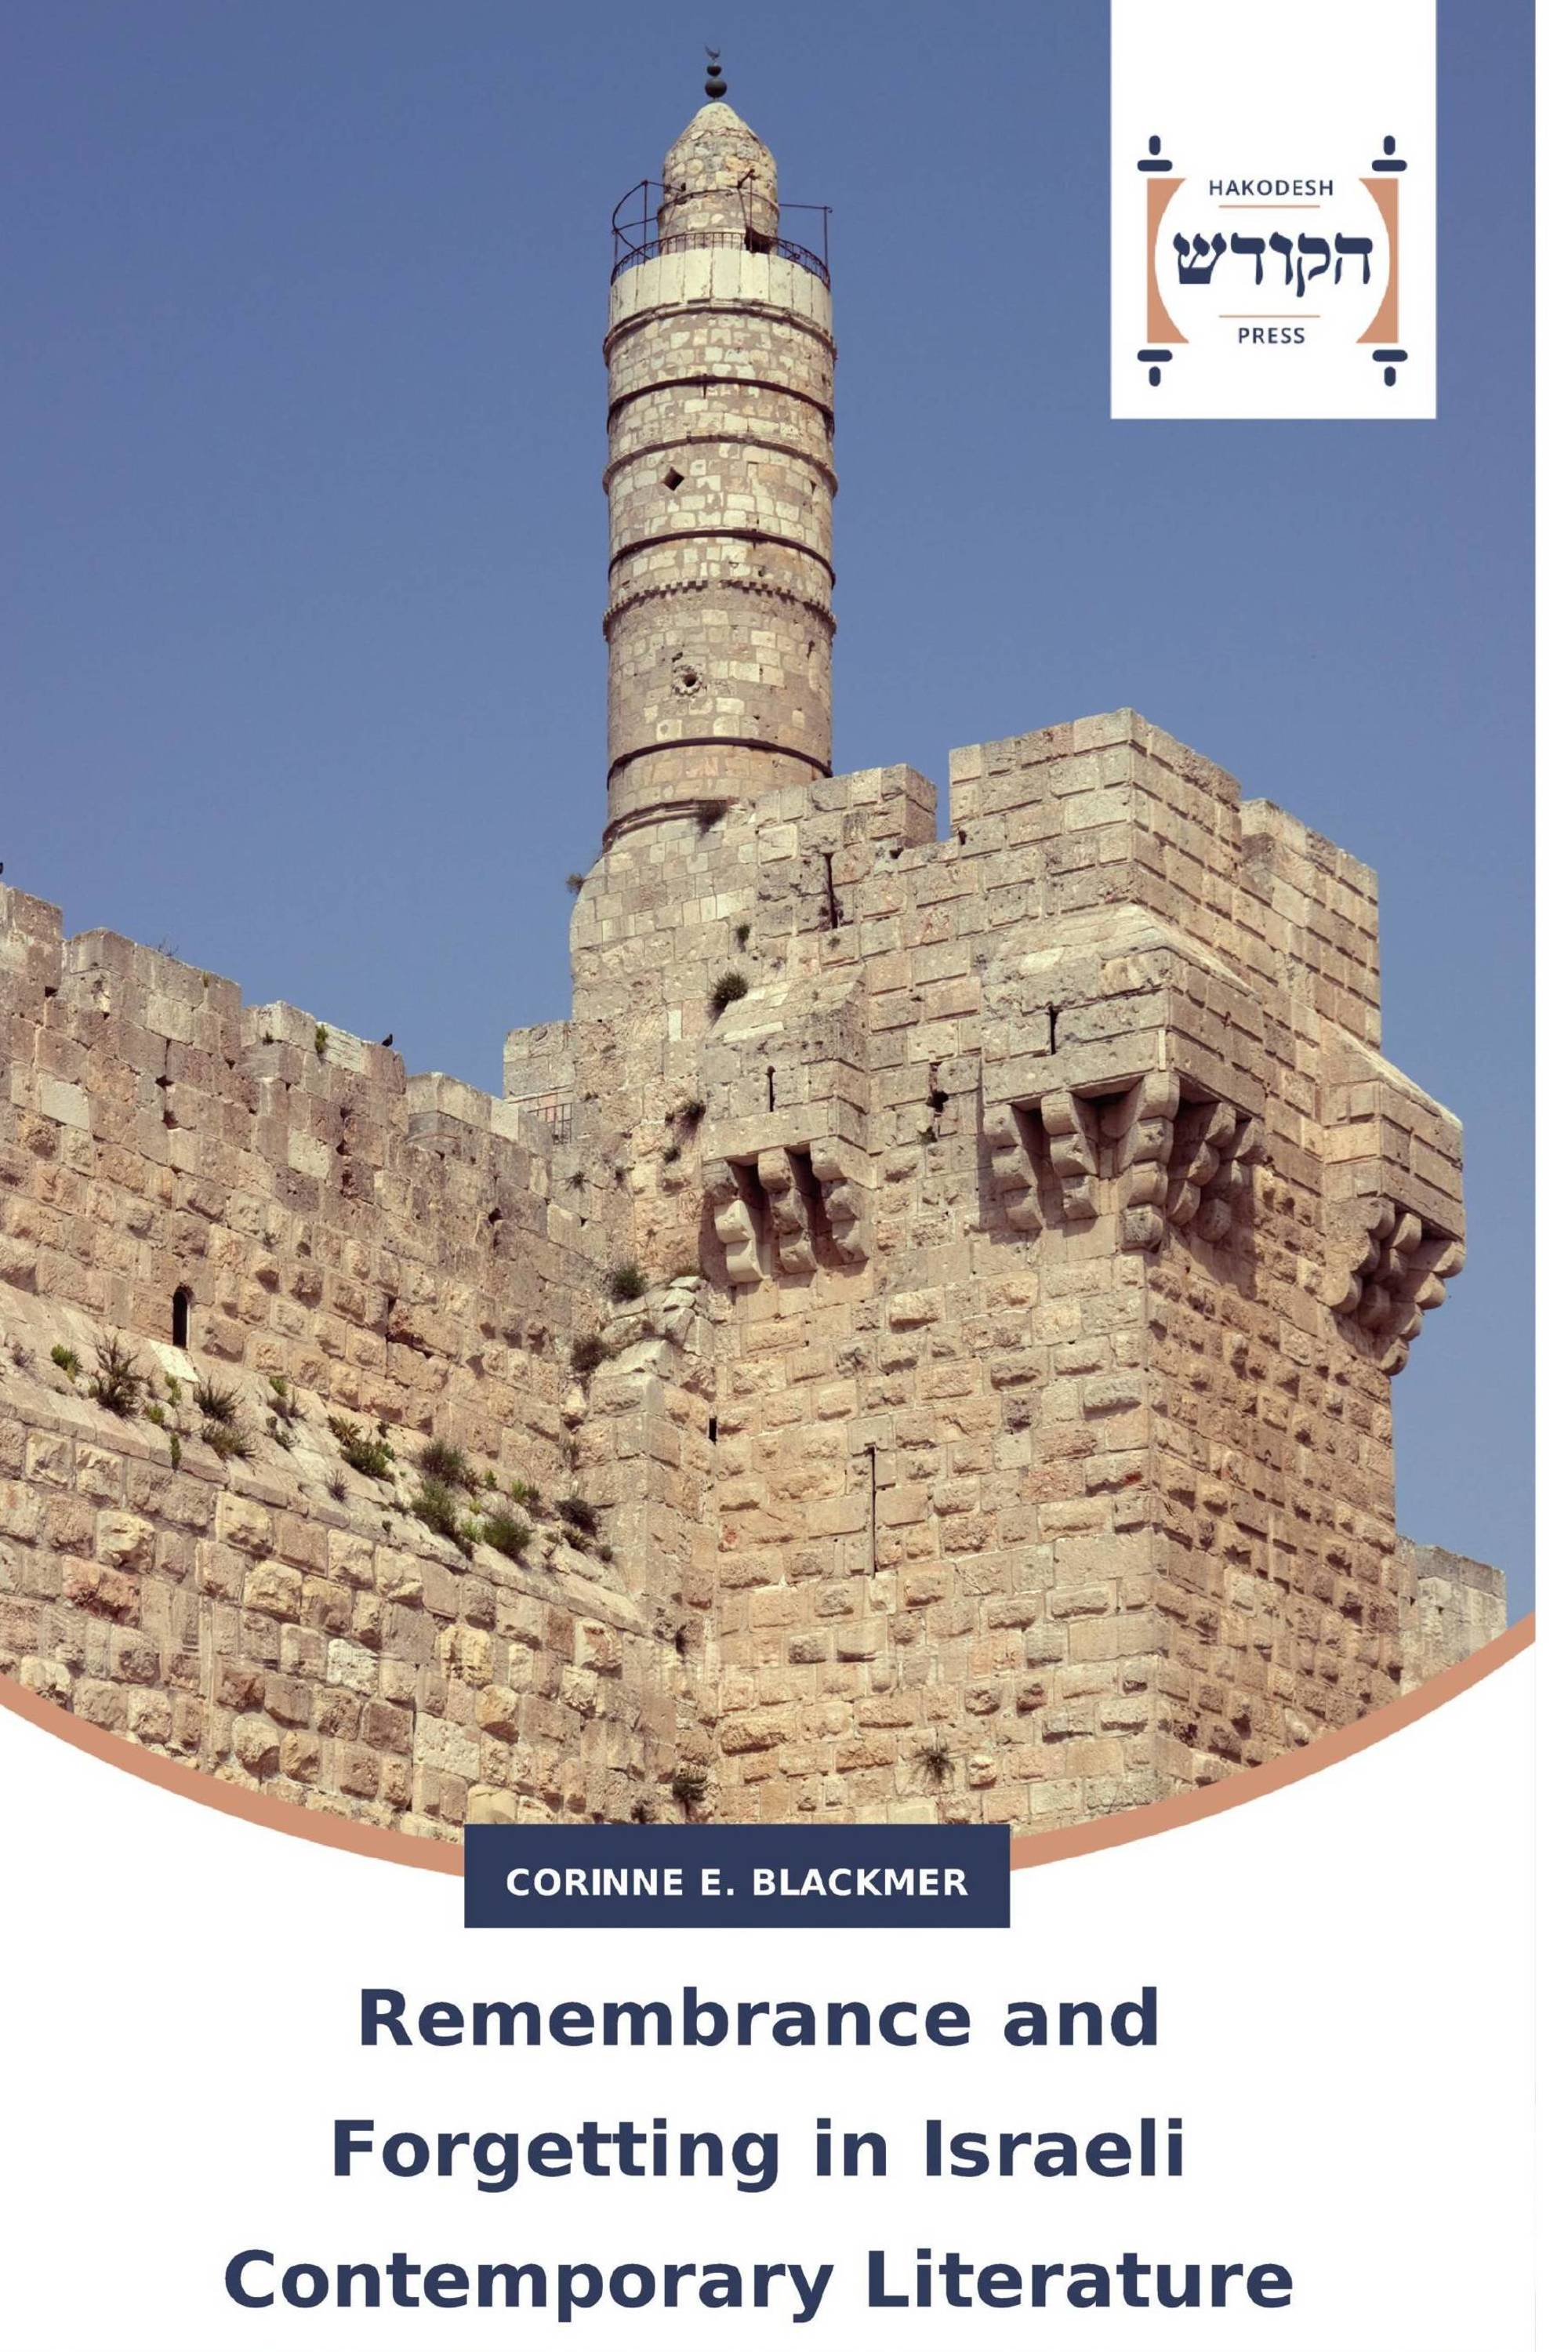 Remembrance and Forgetting in Israeli Contemporary Literature